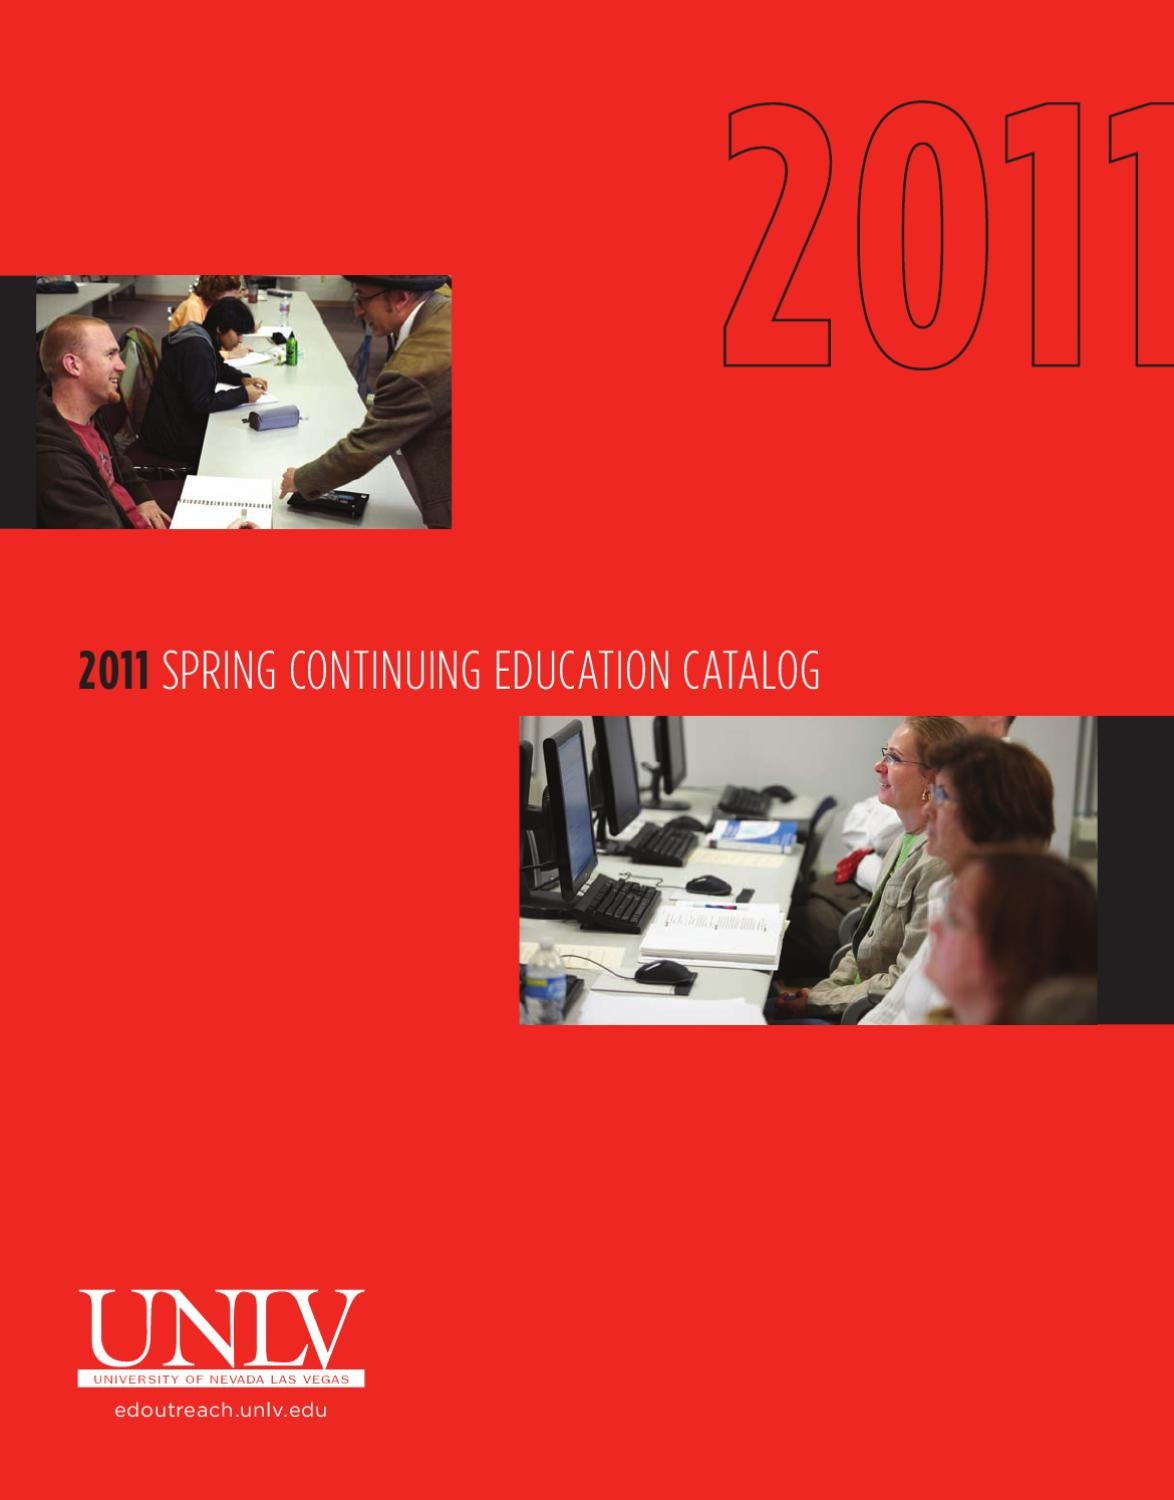 Unlv Continuing Education Spring 2011 Catalog By Division Of Postcard Tango Dance Steps Diagram Ebay Educational Outreach Issuu